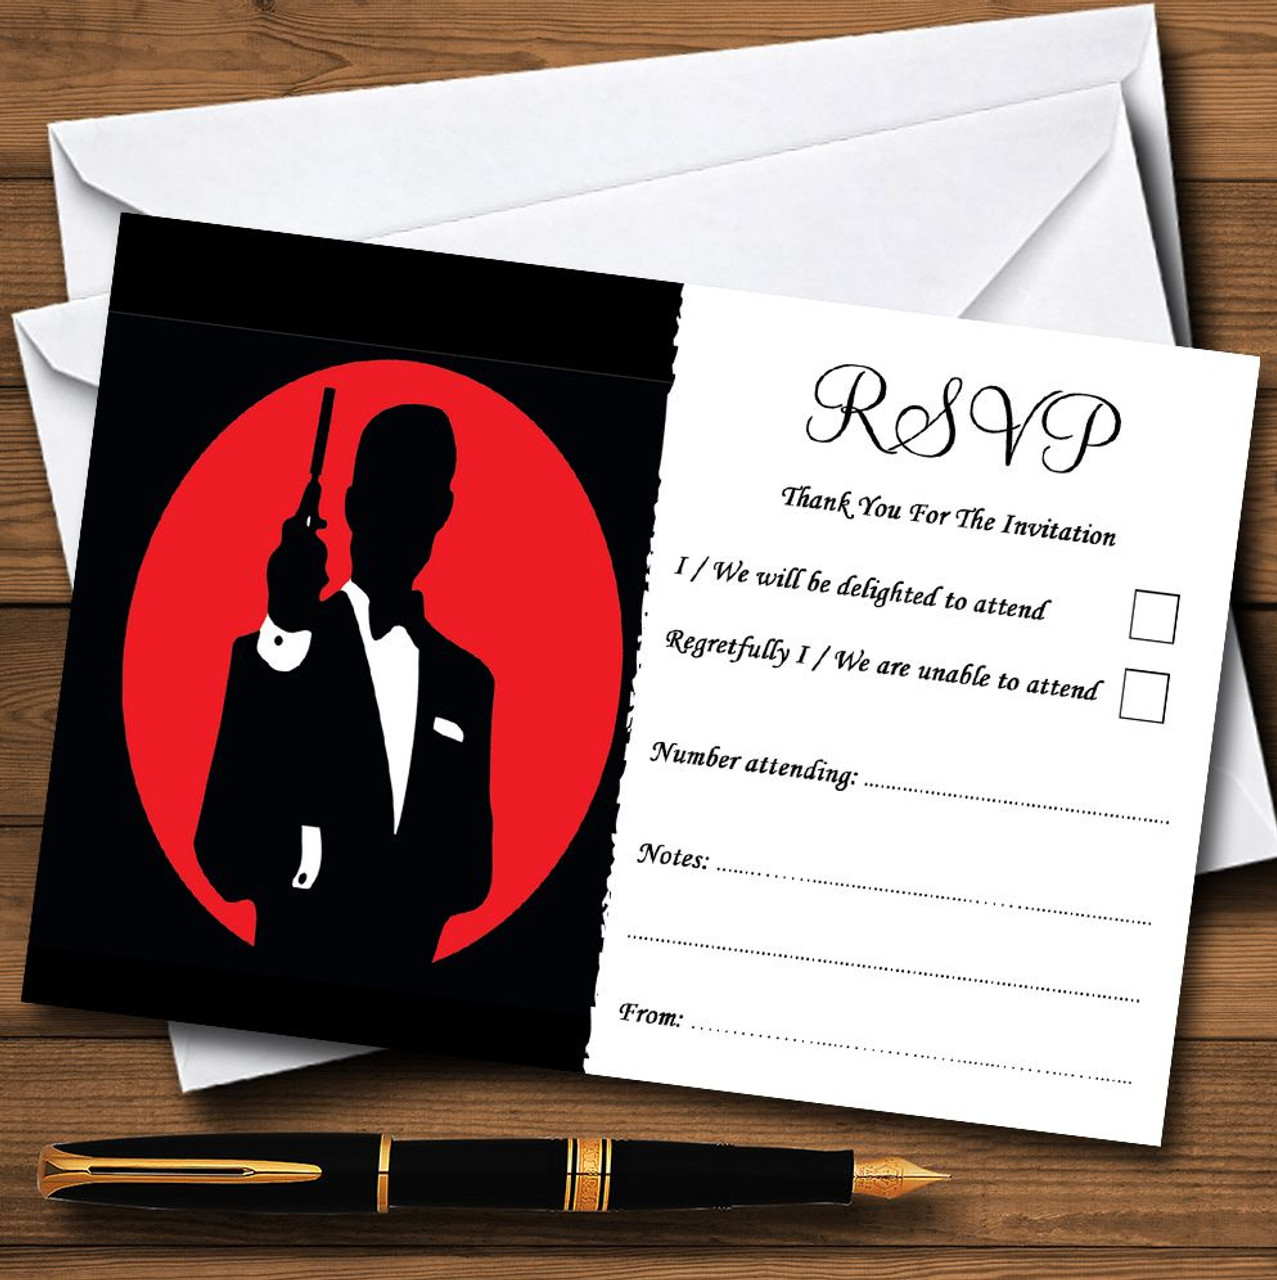 James Bond Special Agent Personalised RSVP Cards - The Card Zoo